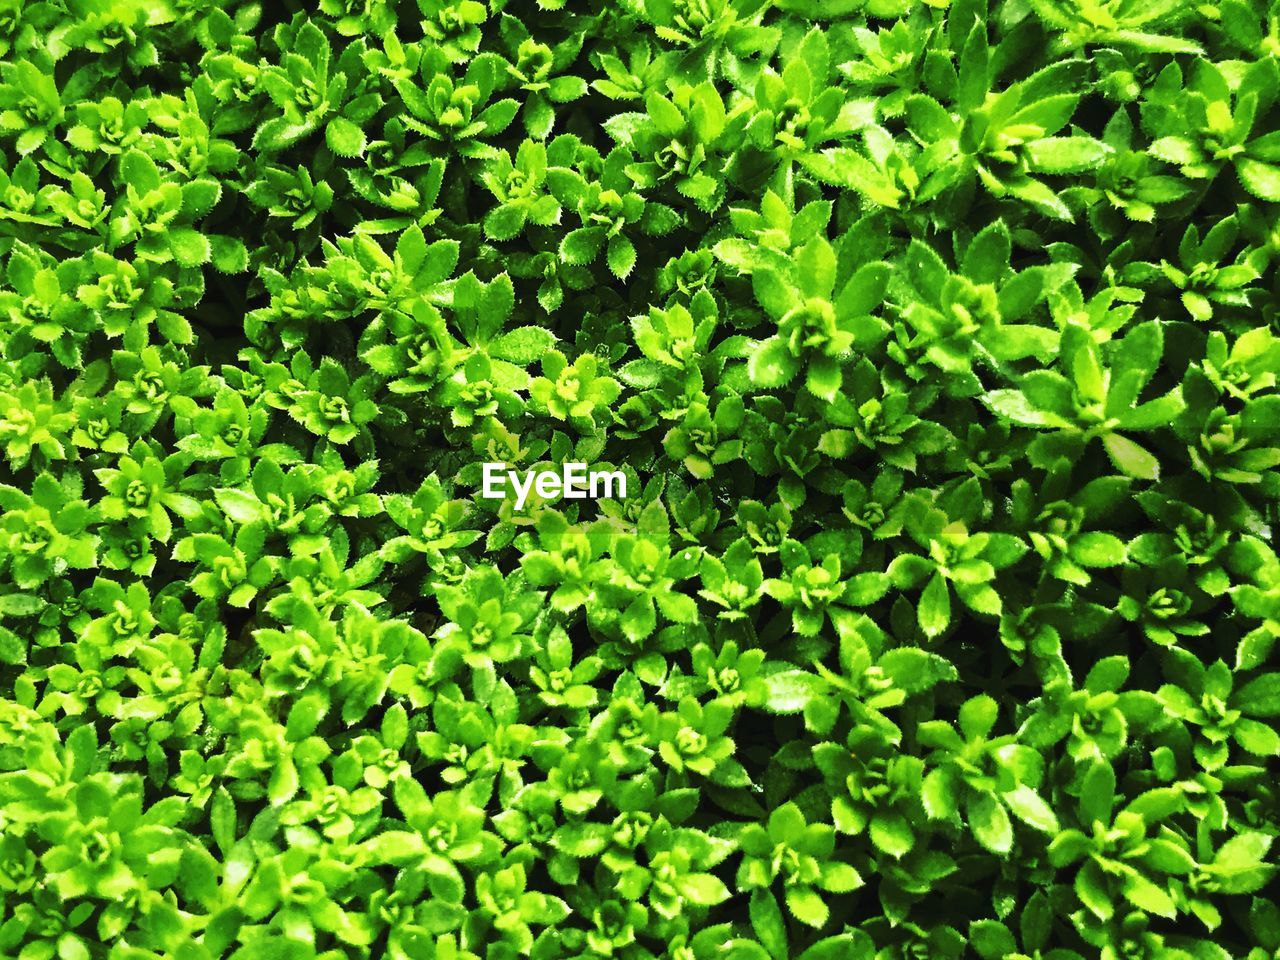 green color, growth, full frame, nature, plant, backgrounds, lush foliage, leaf, no people, day, outdoors, freshness, beauty in nature, grass, close-up